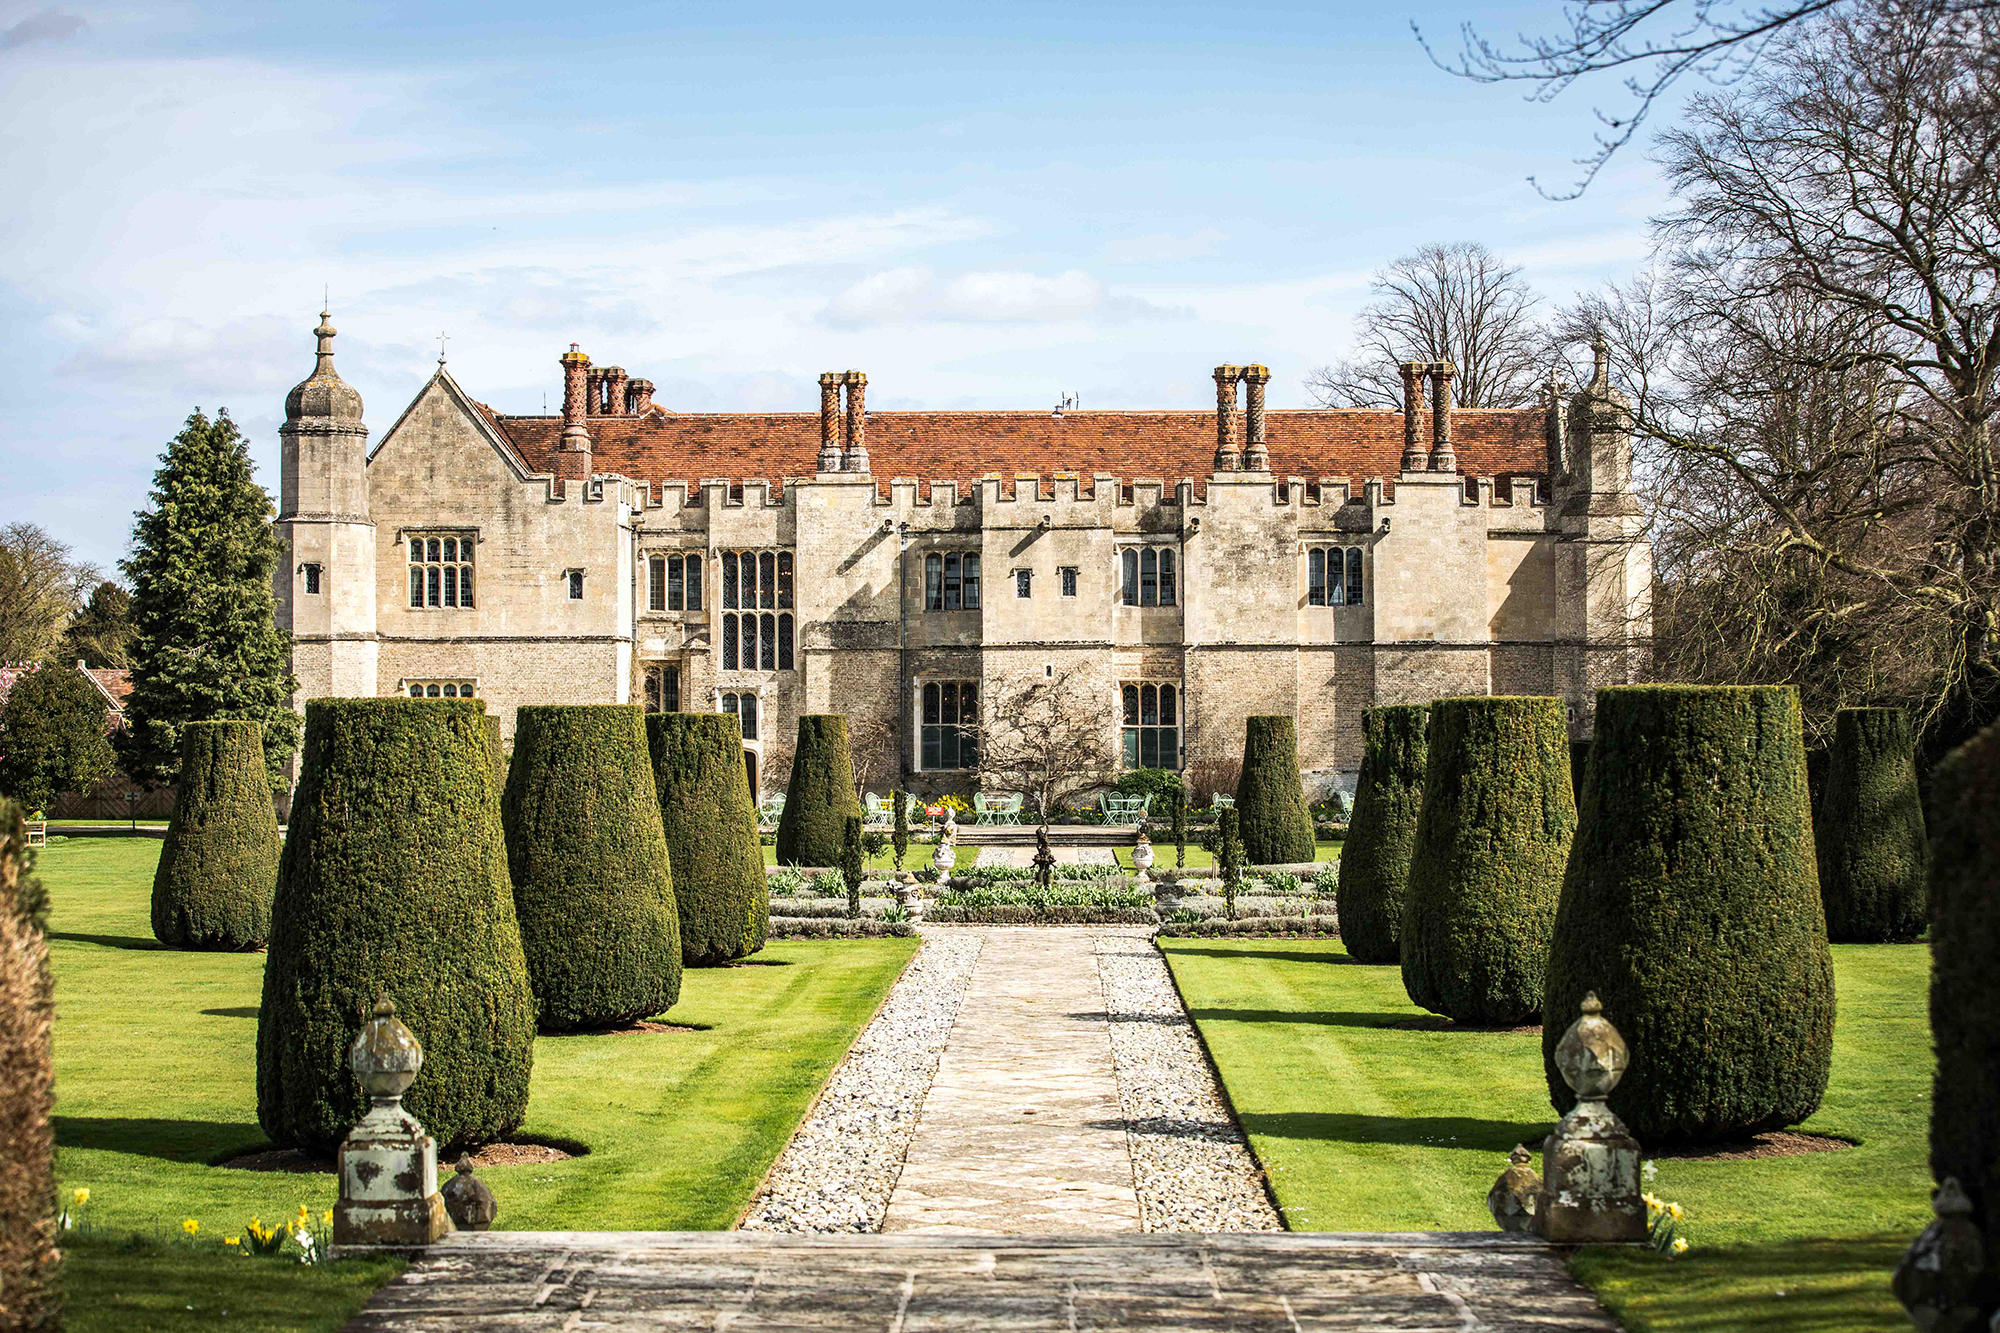 The rear of Hengrave Hall and gardens in early spring